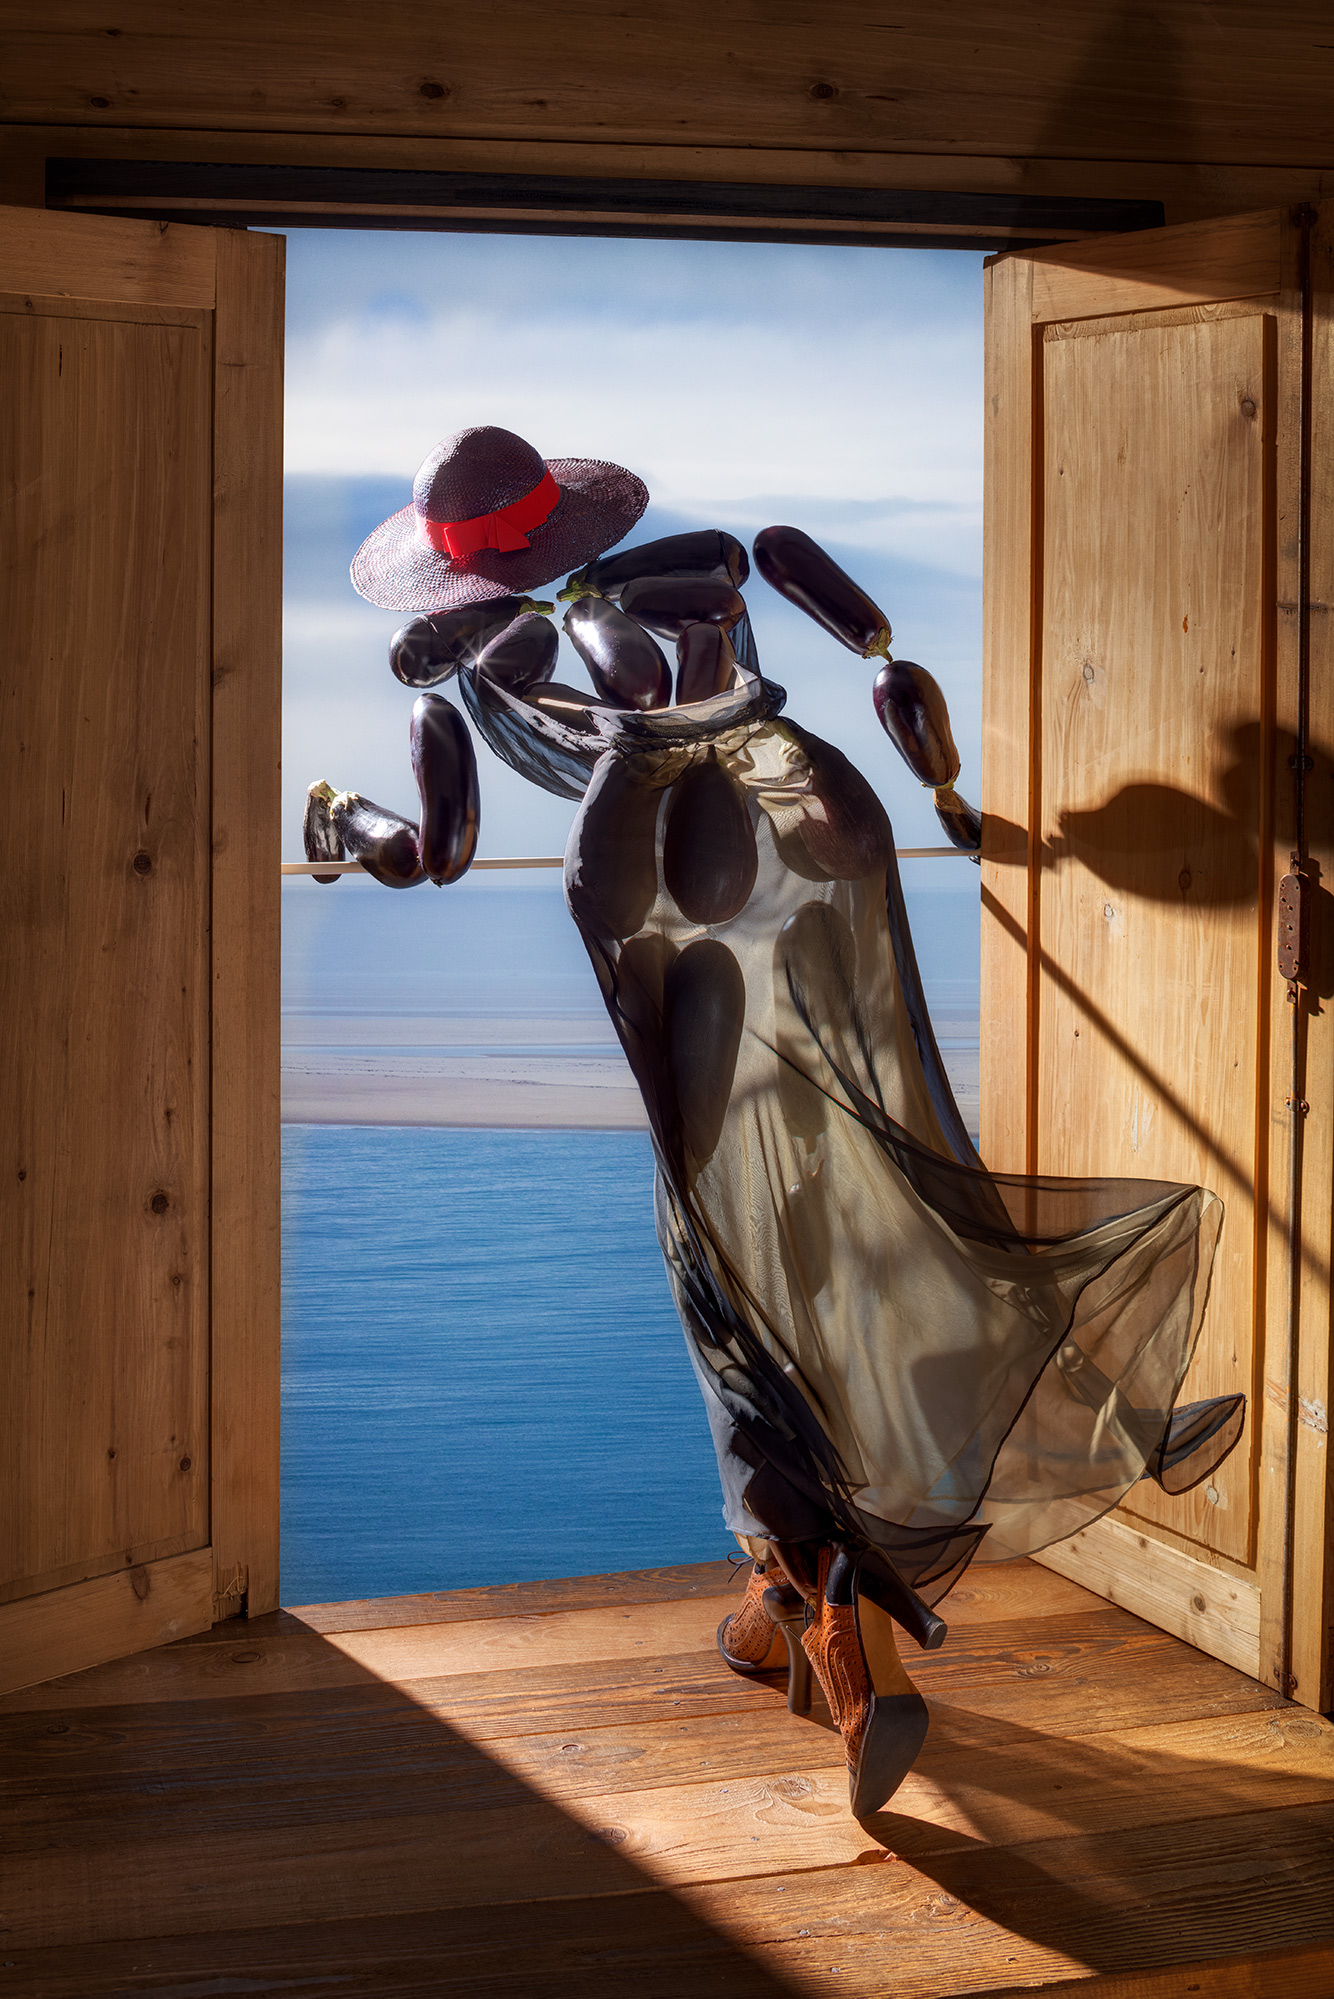 Fashion meets Food. eggplants, aubergines put together the figure of a women leaning elegantly out a door overlooking the ocean. Hat with summer dress.